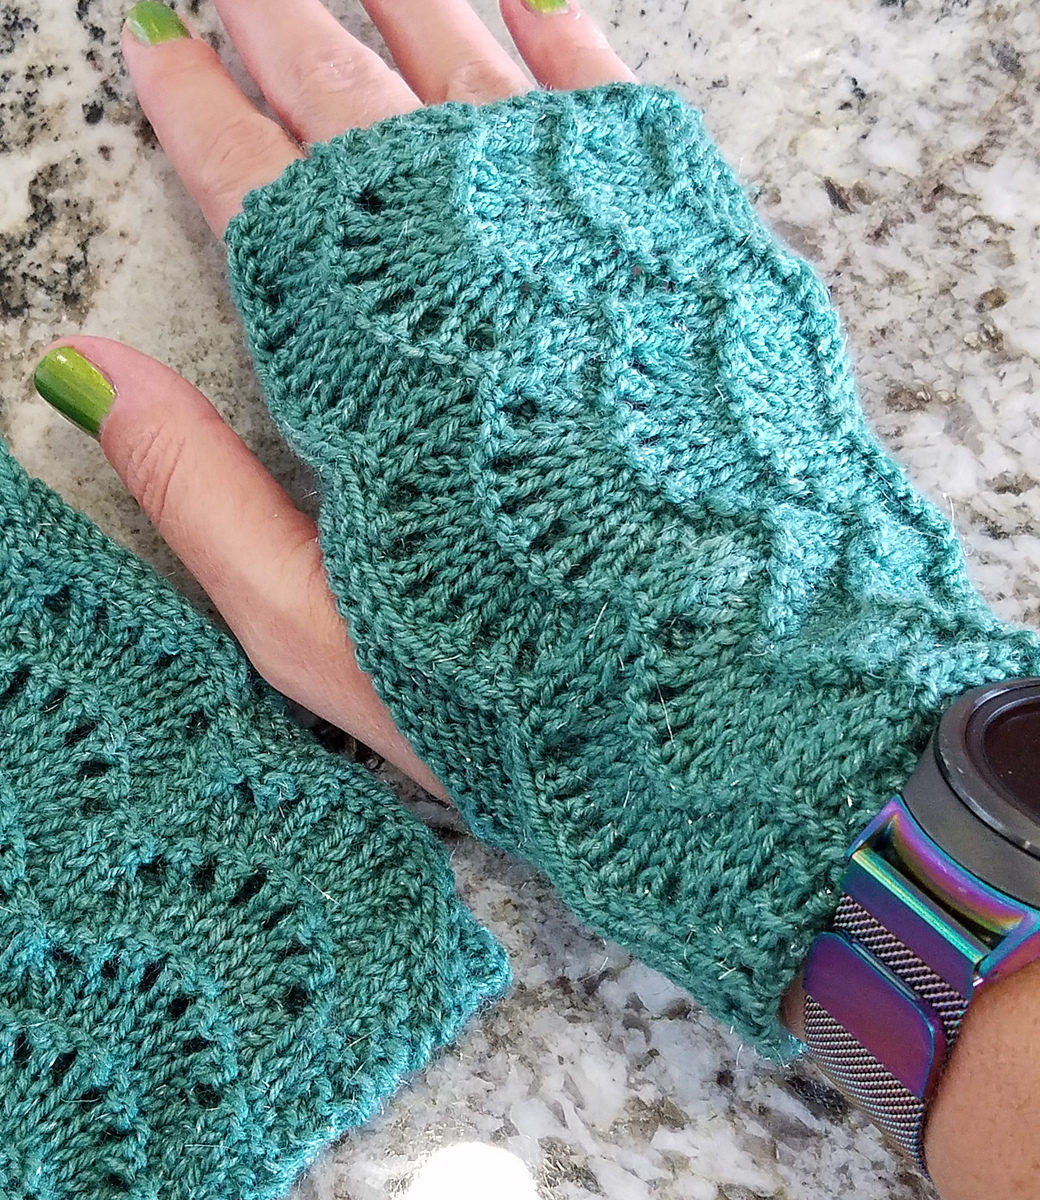 Knitting Pattern For Gloves Easy Mitts Knit Flat Knitting Patterns In The Loop Knitting